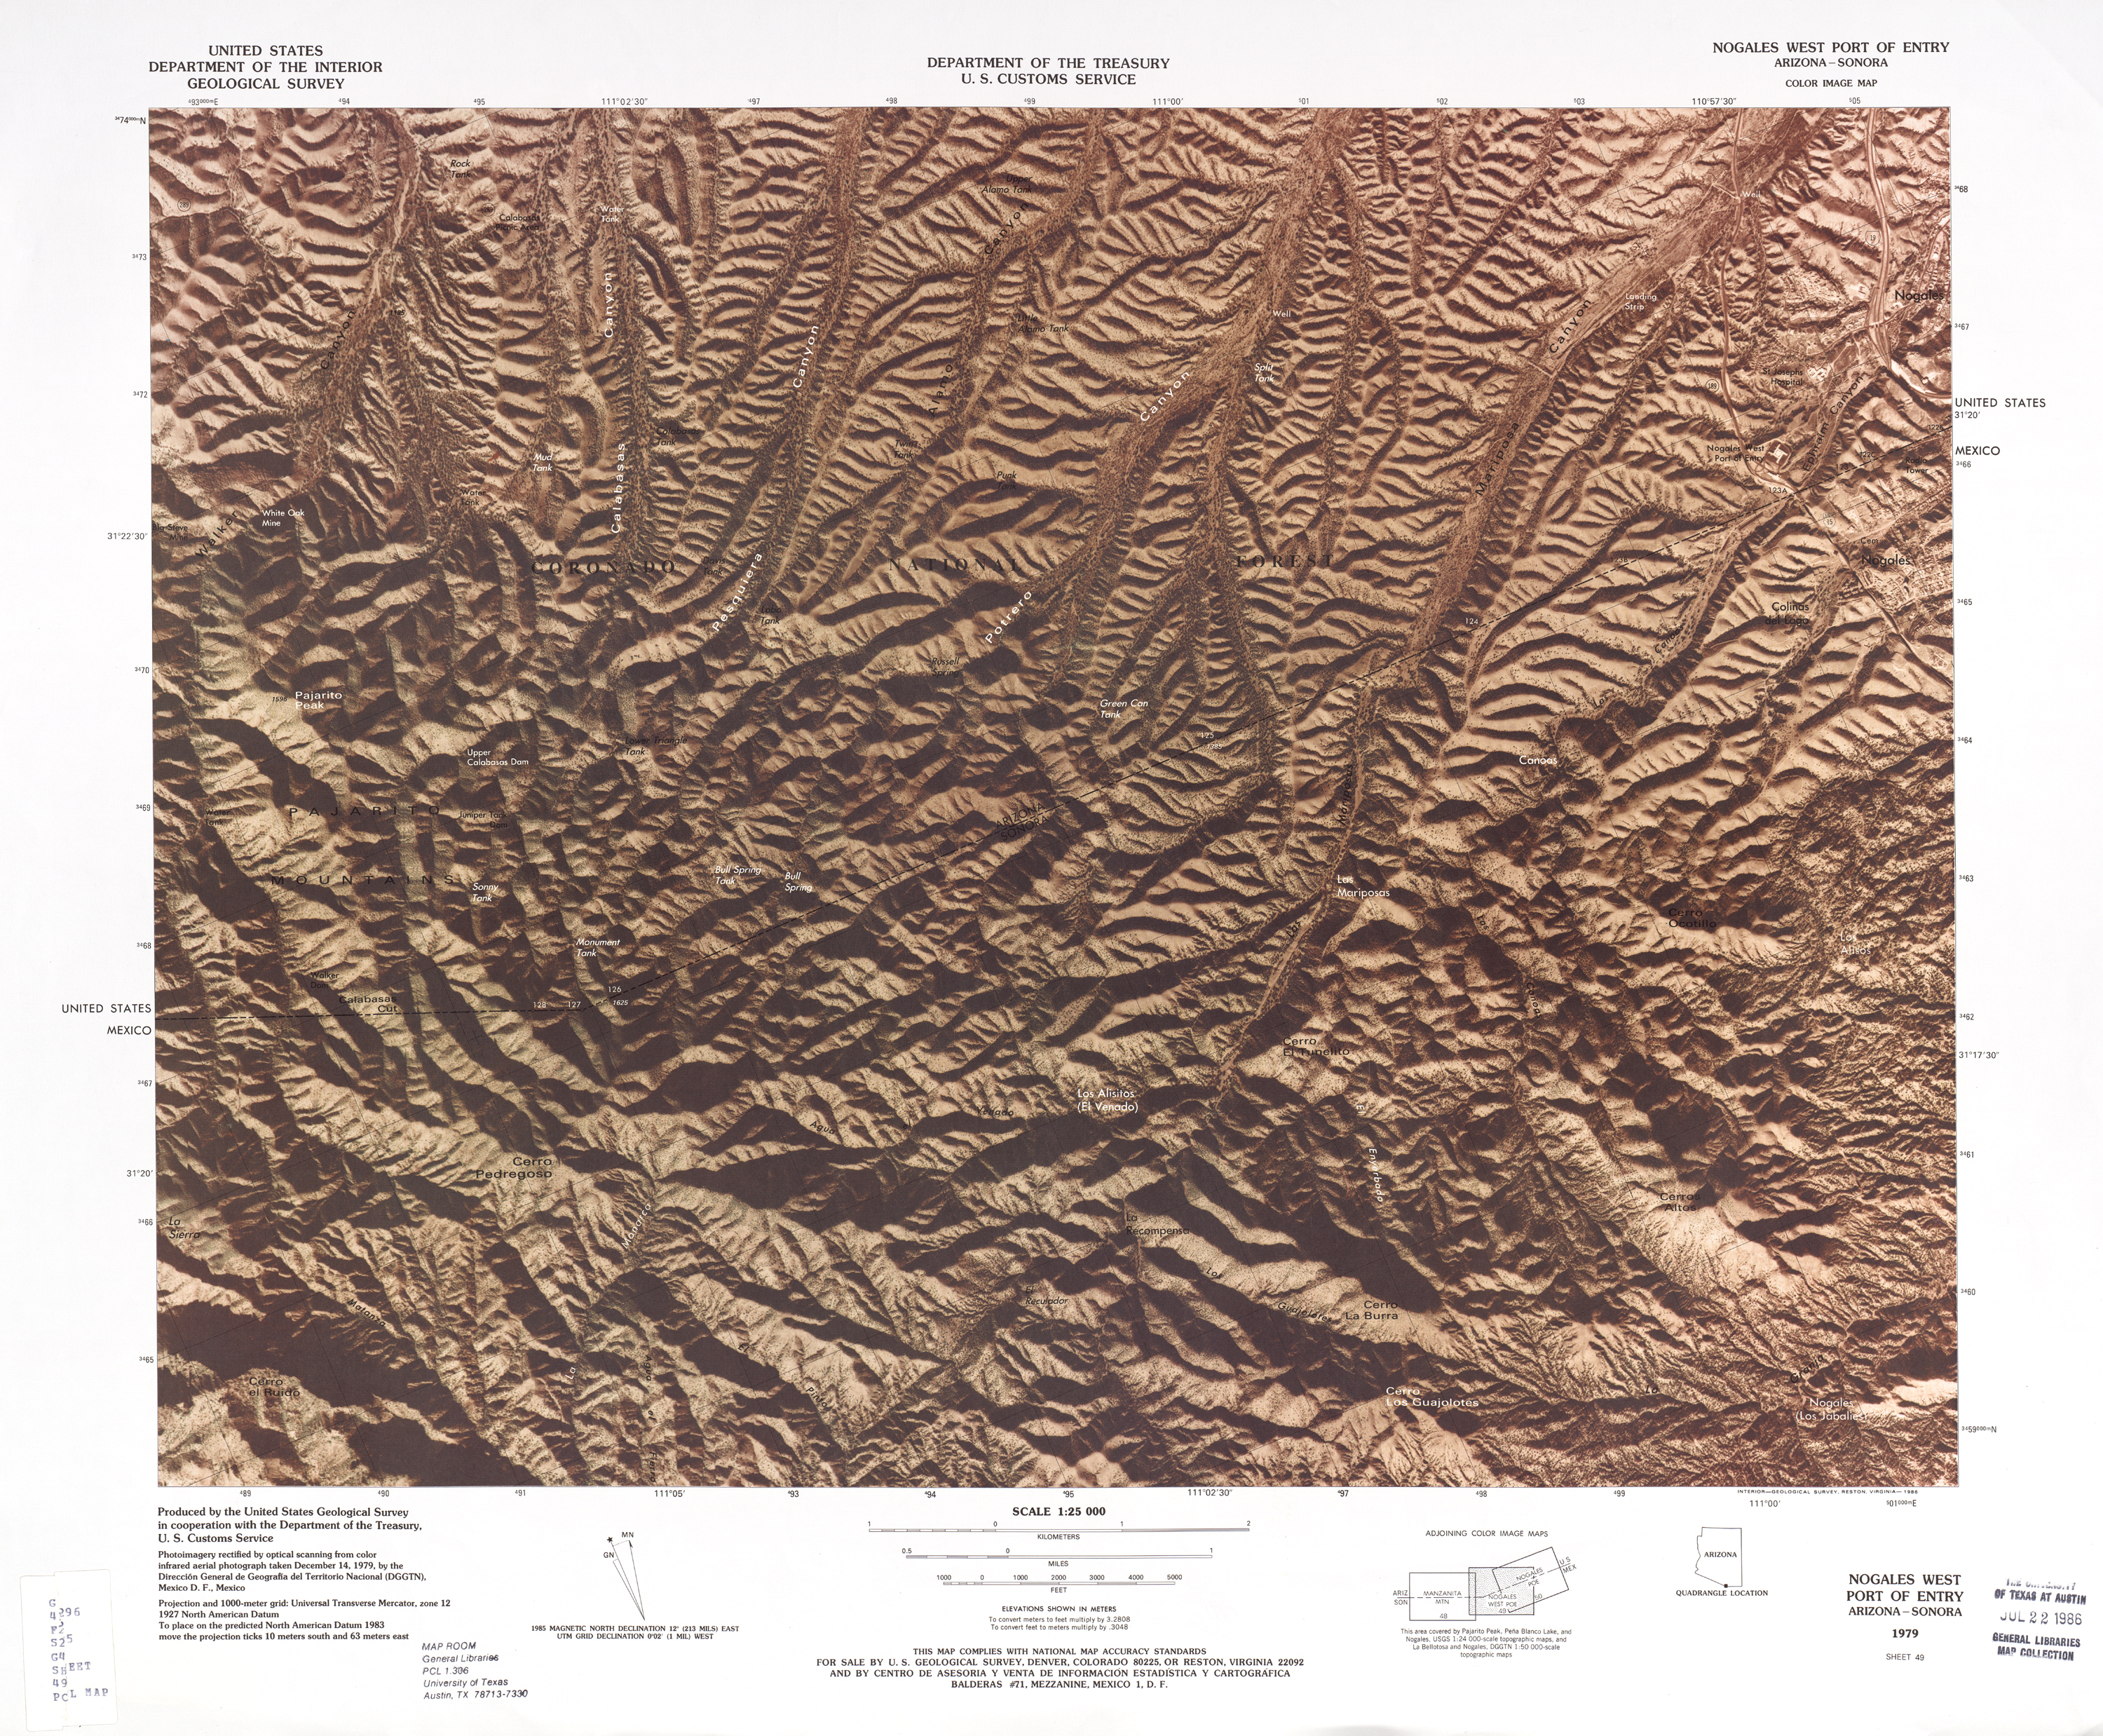 United States-Mexico Border Map, Nogales West Port of Entry